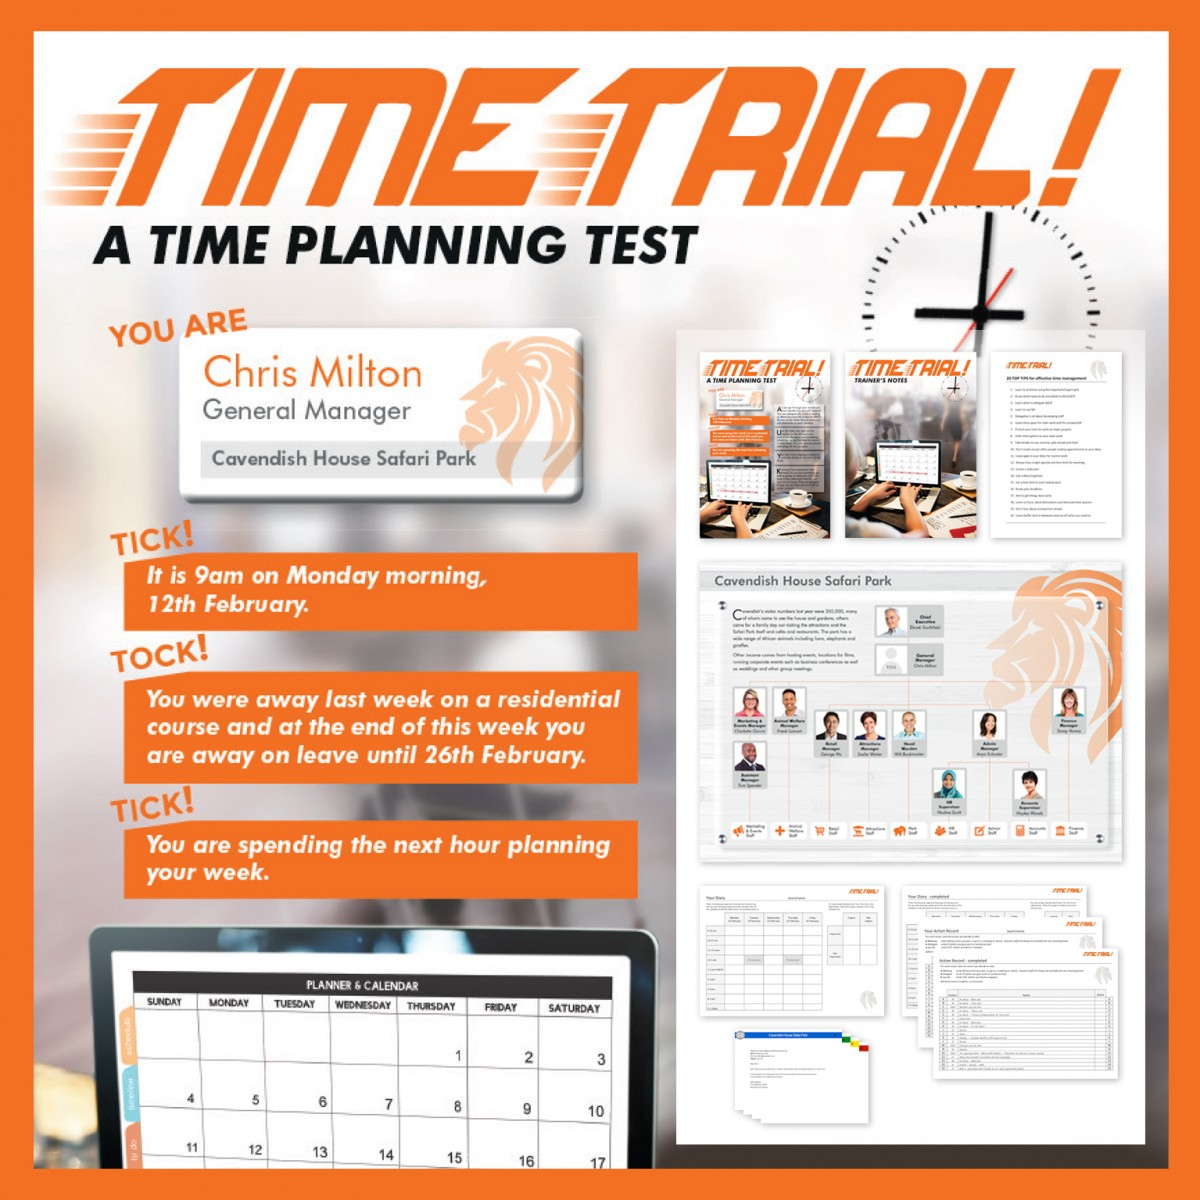 Time Trial! | Time Management InBox Training Activity | Virtual Training Activity